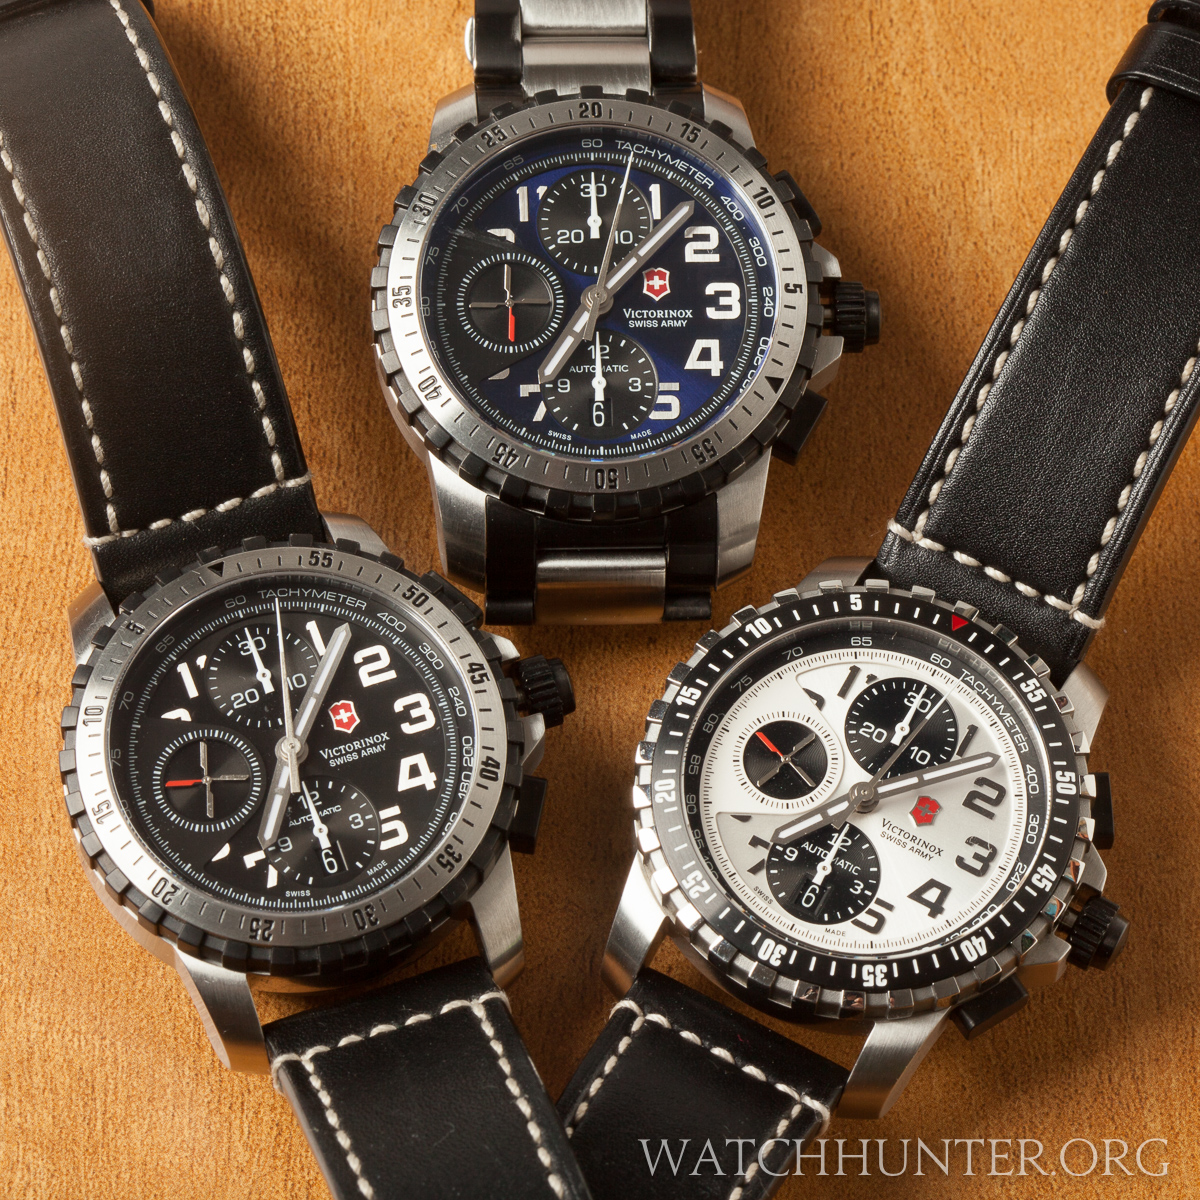 The dials of the 1st get Alpnachs are related but unique...